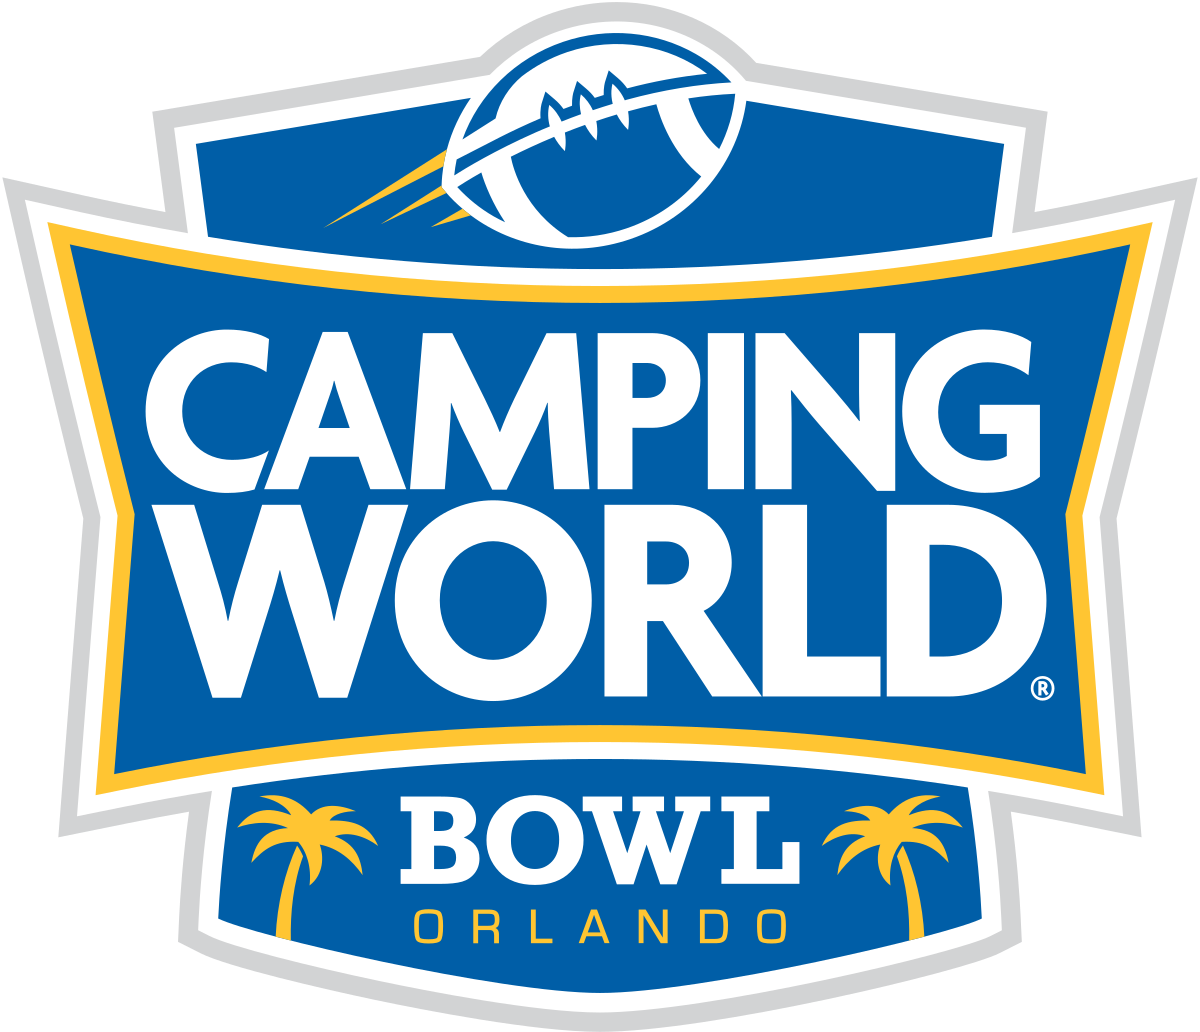 camping world bowl game logo icon park